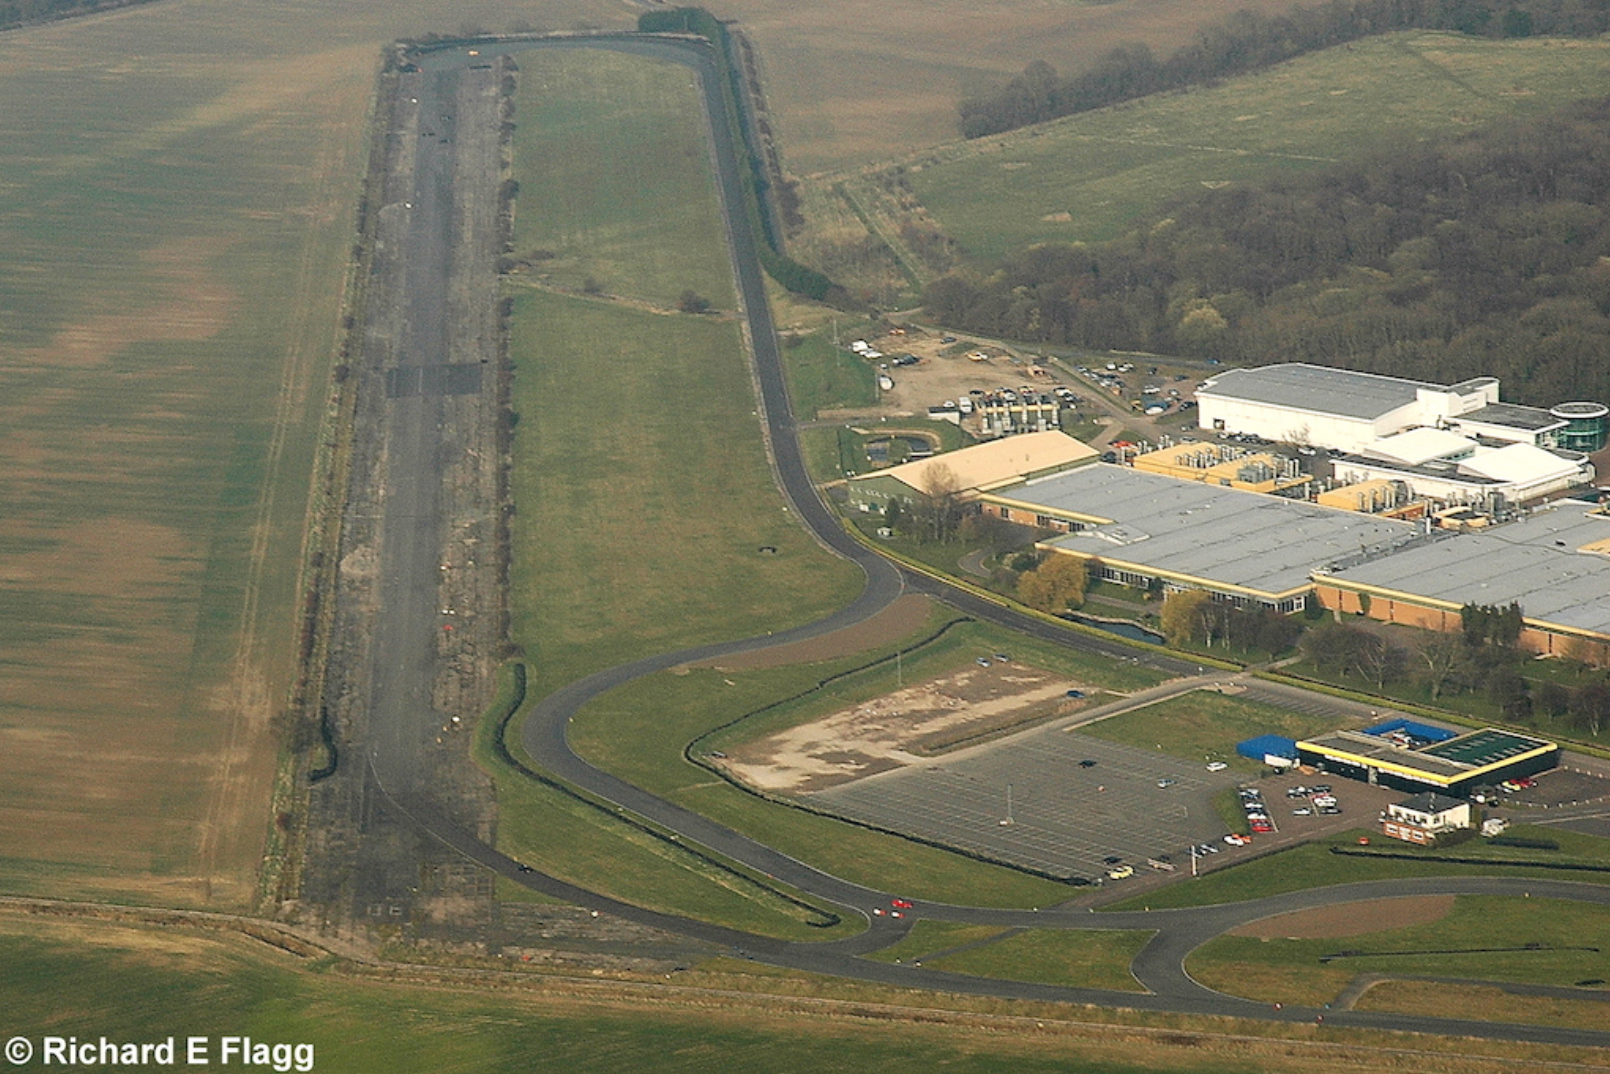 004RAF Hethel Airfield - 21 March 2009.png